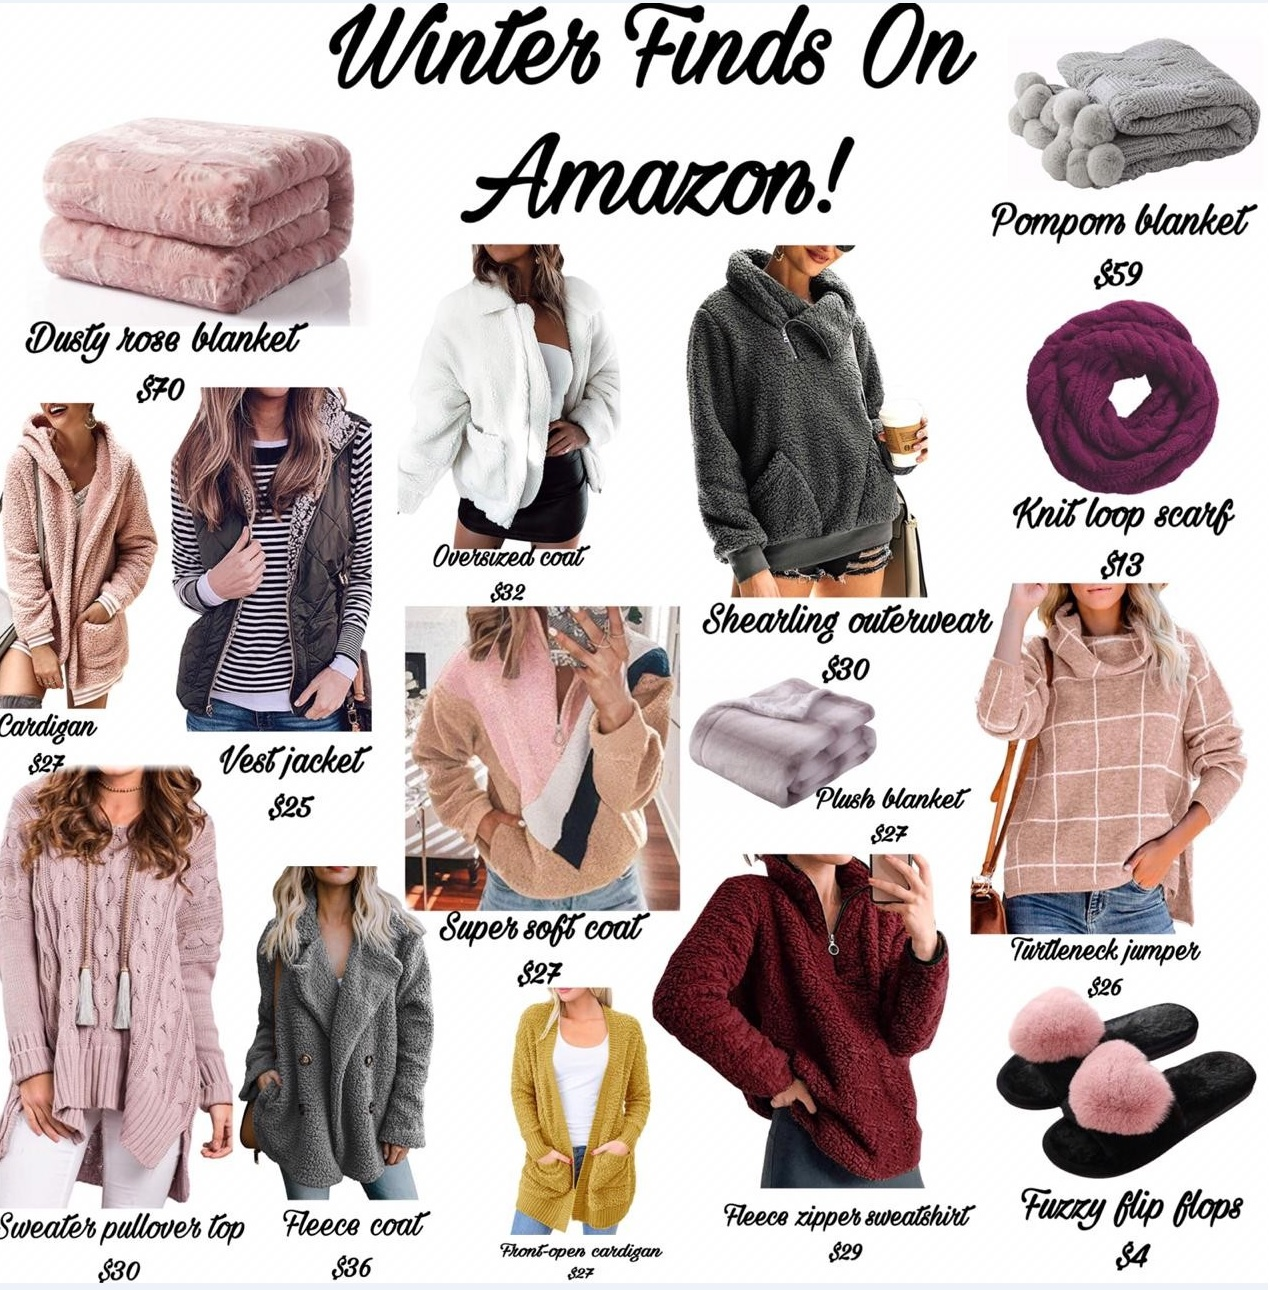 Coolest & Super Affordable Christmas Finds From Amazon – A Complete Gift Guide Under $70